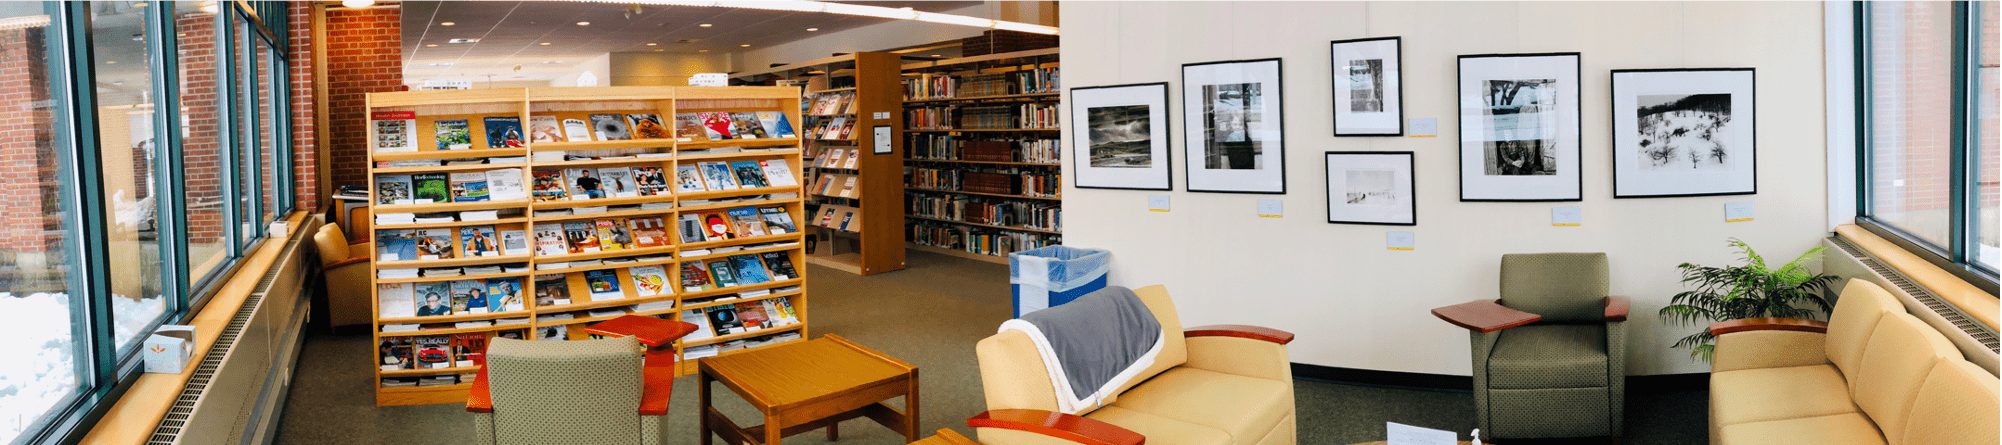 visit the library galleries